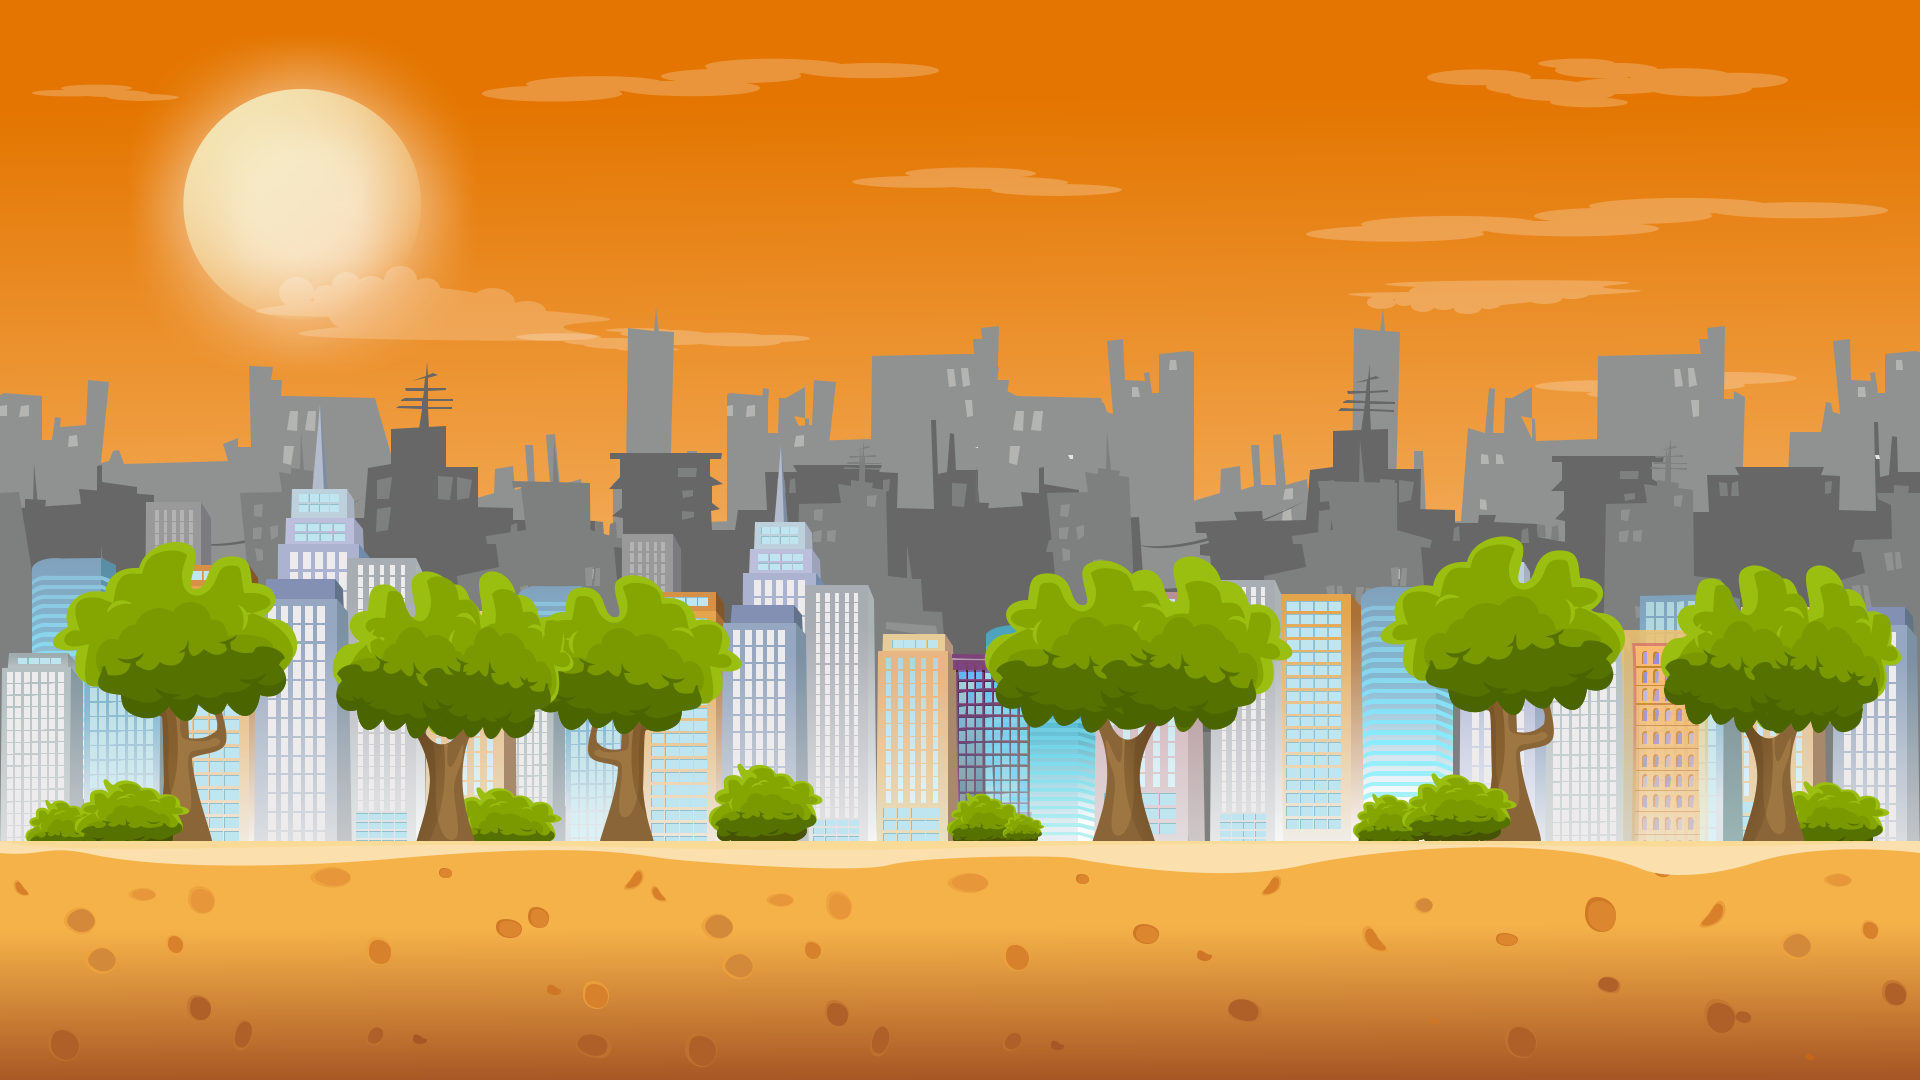 3 Parallax Backgrounds OpenGameArtorg 1920x1080